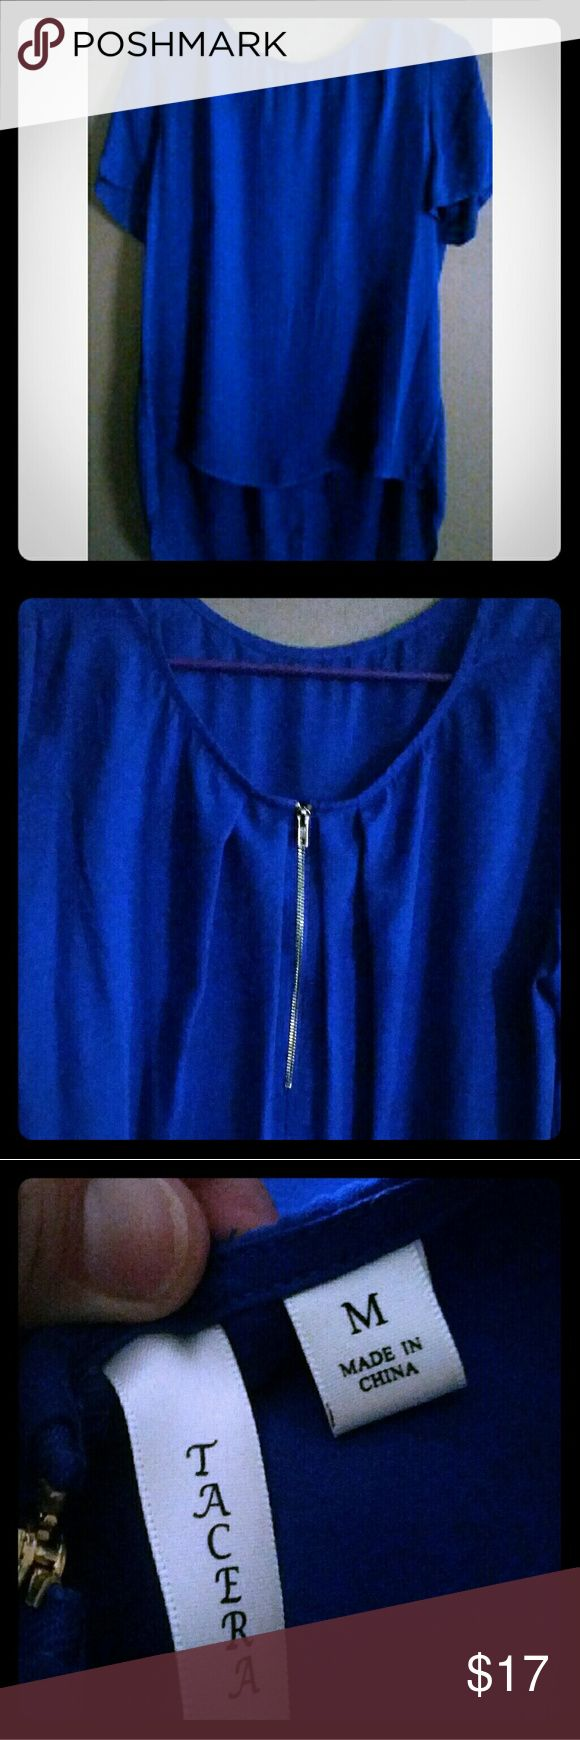 Royal blue high-low top Royal blue high-low top; only worn once. Women's size medium. Has a beautiful zippered neck (back photo) and the material is very flowy. Would go perfect with leggings, jeans, or even a skirt. Also, could be easily dressed up or dressed down with the perfect accessories. Tacera Tops Blouses